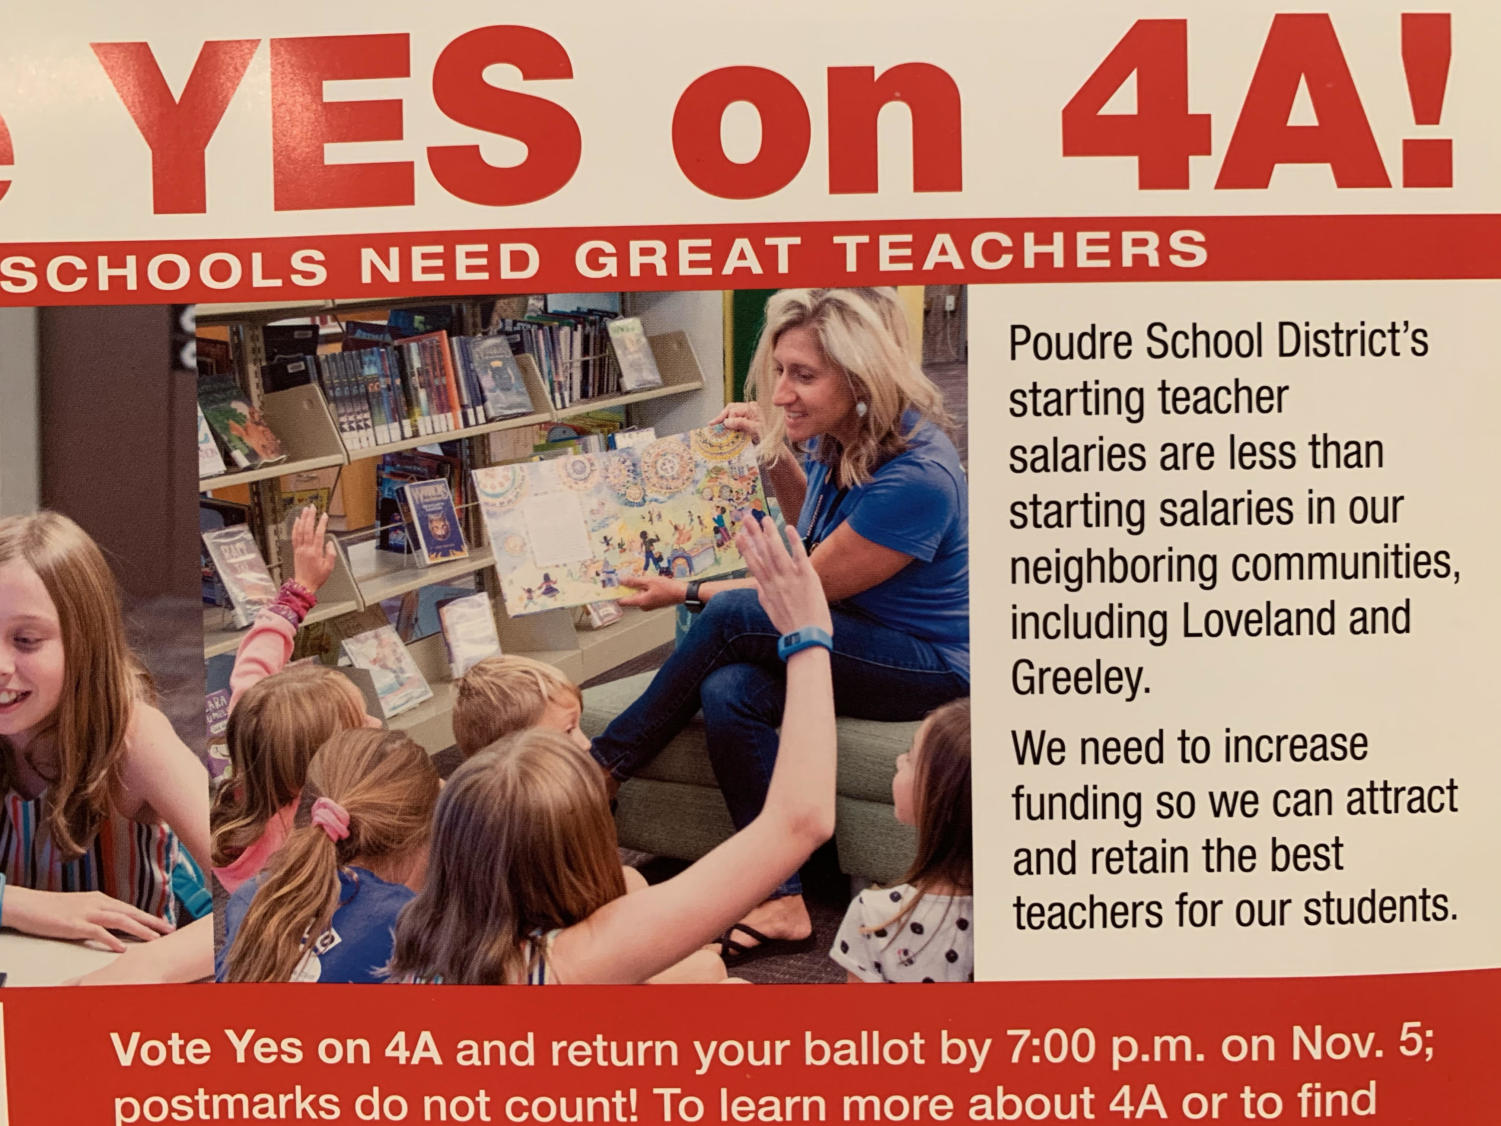 Vote Yes on 4A.